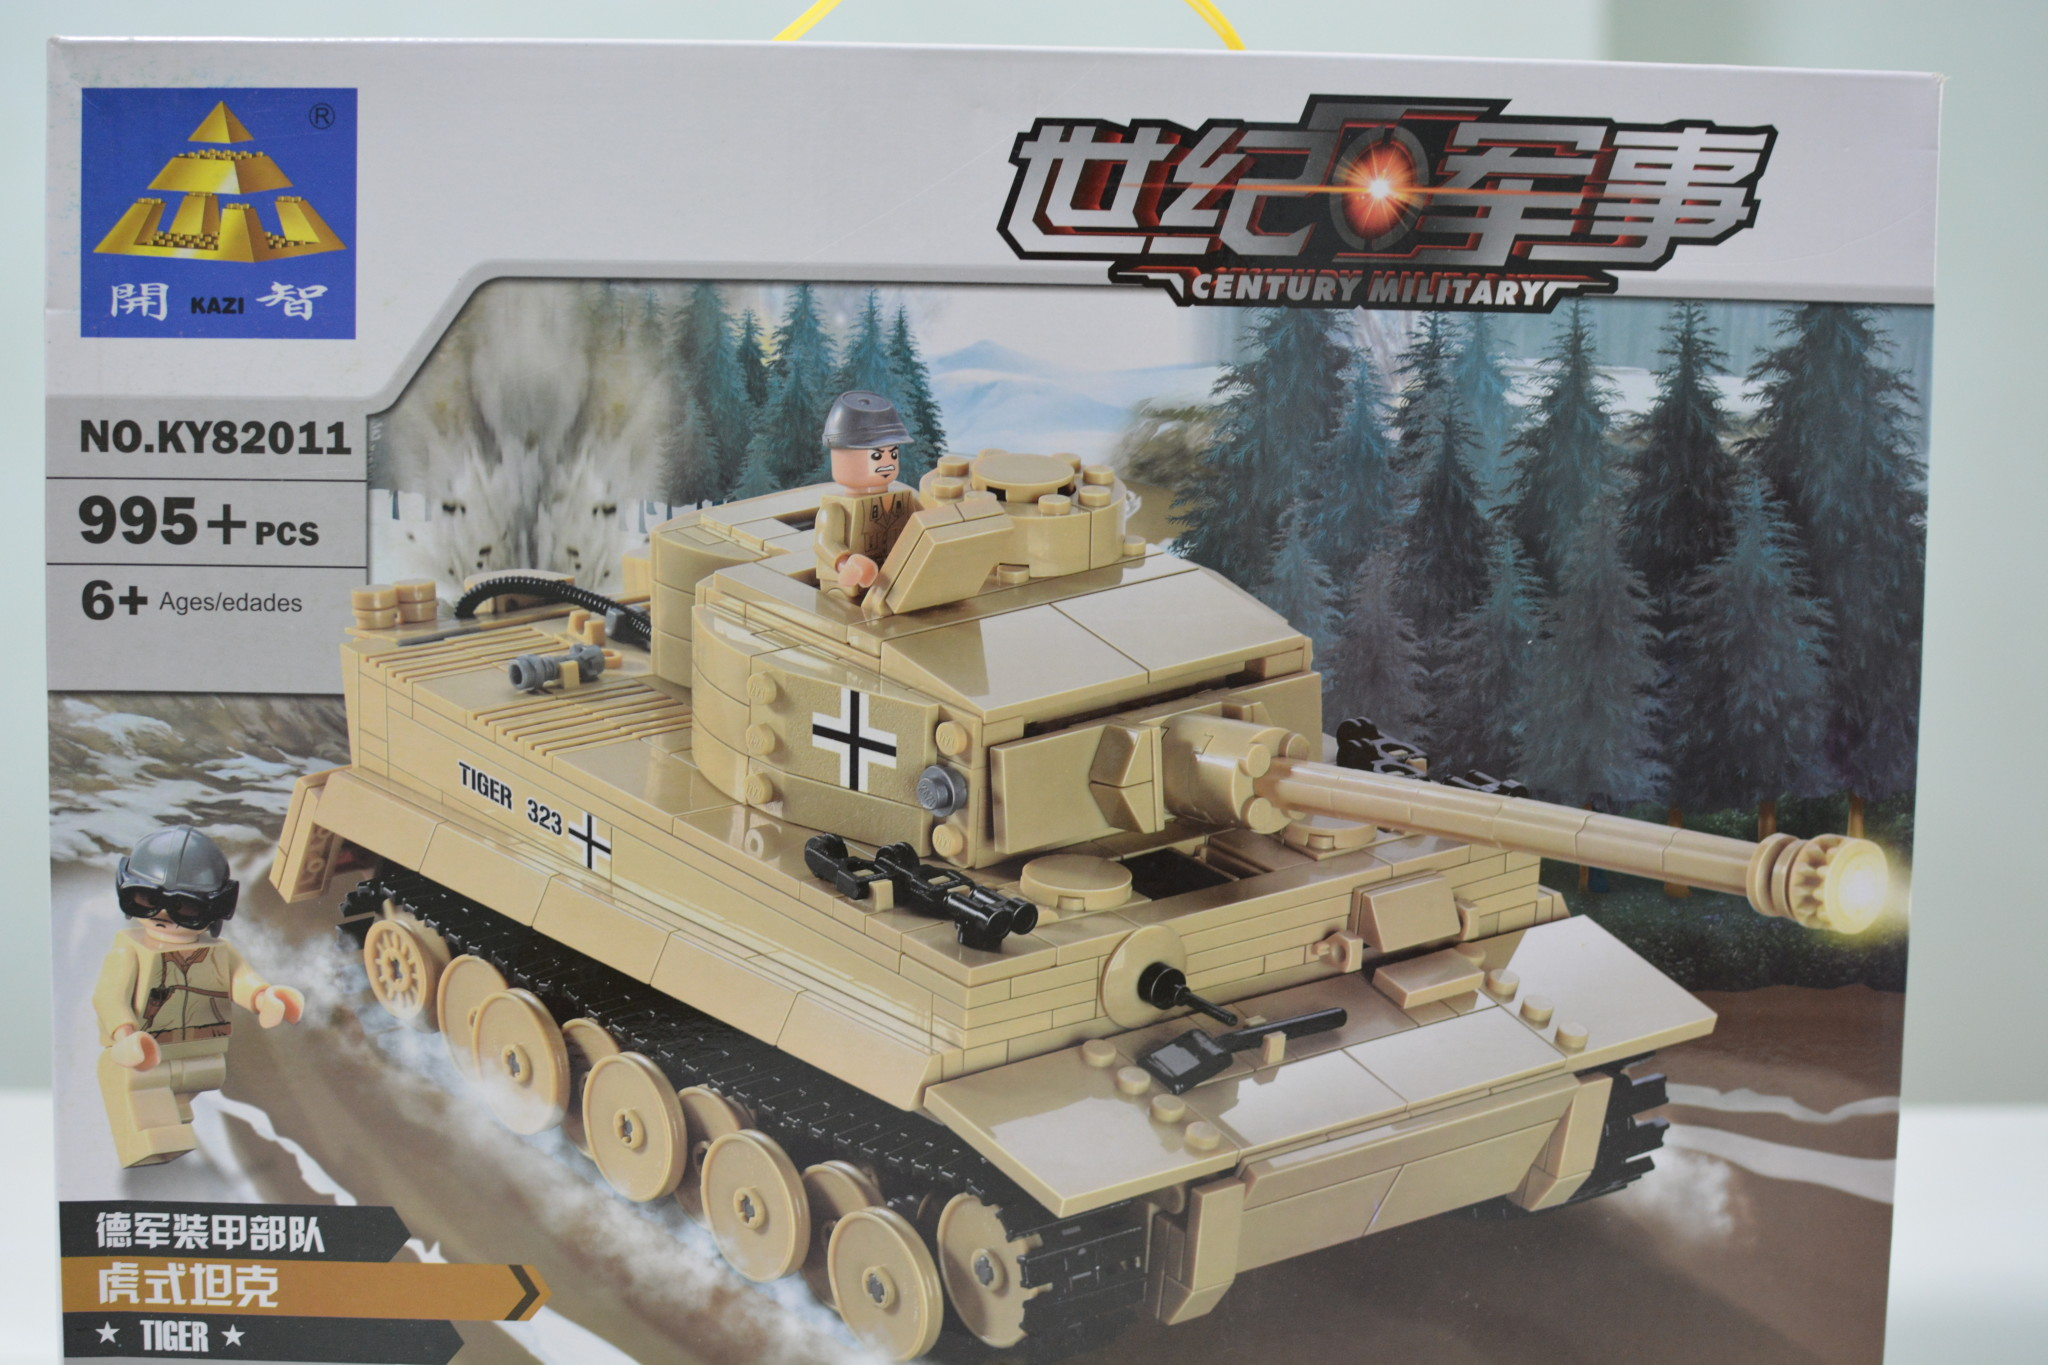 Kazi Review – Tiger (KY82011) - The BrickHorse